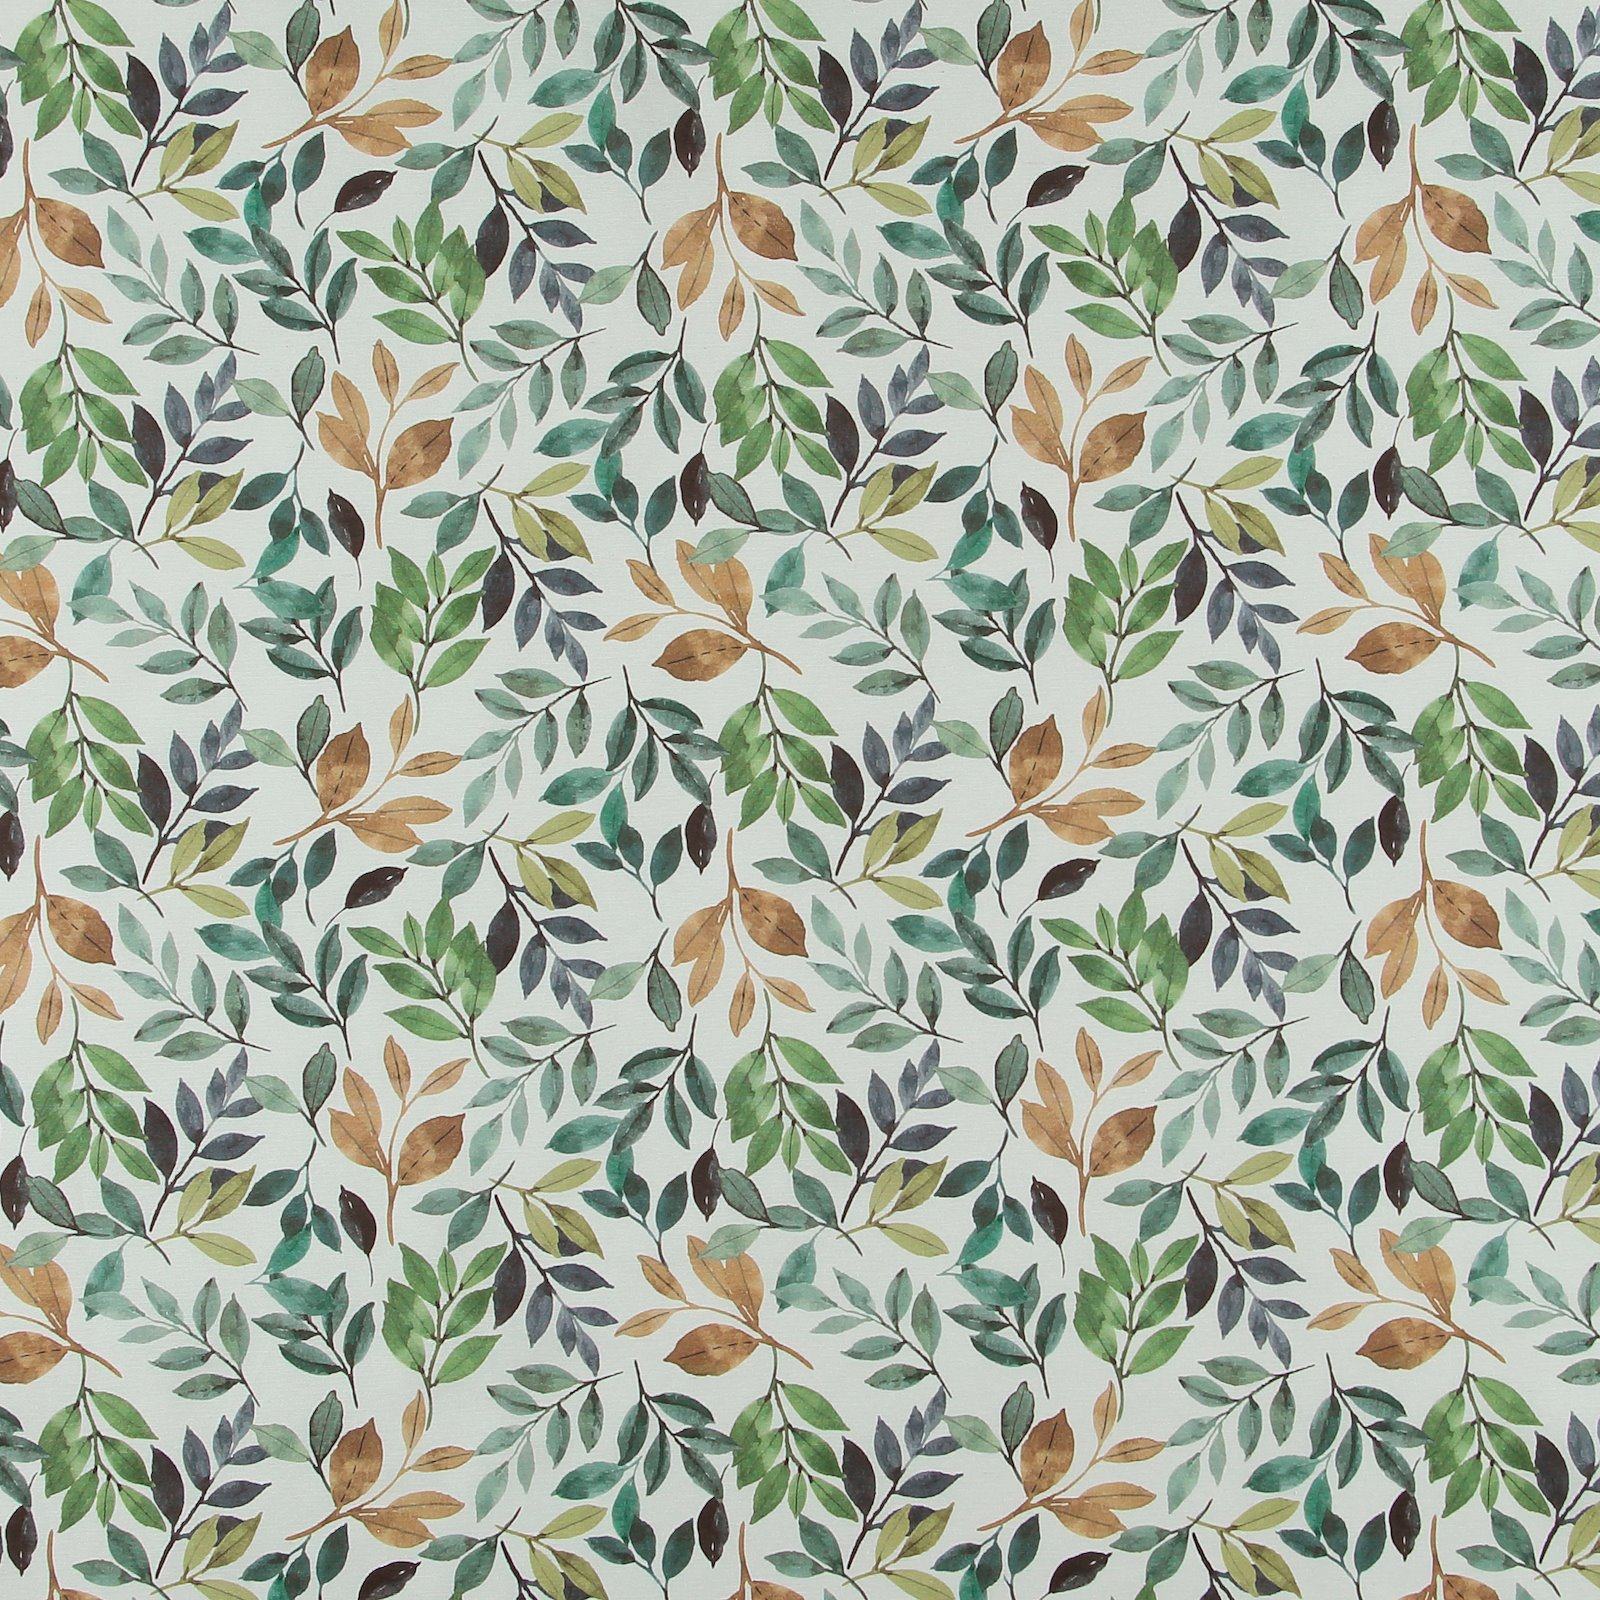 Woven white with multicolored leaves 750479_pack_sp